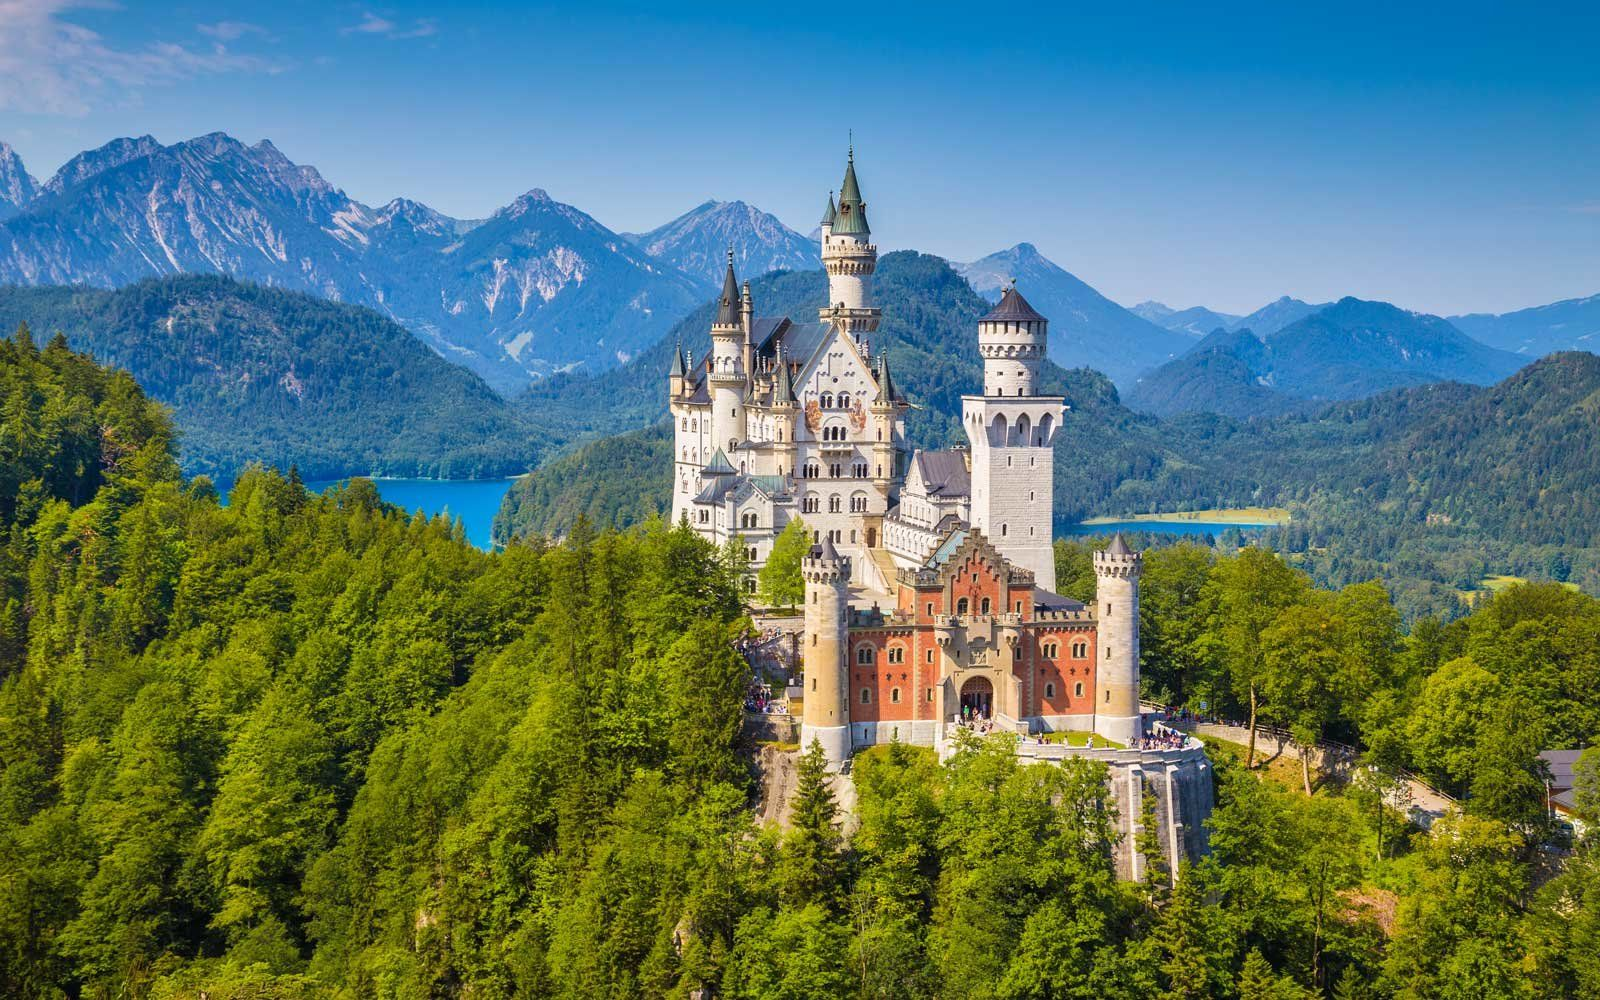 25 Facts About Neuschwanstein Castle In Germany Germany Castles Neuschwanstein Castle Germany Travel Guide